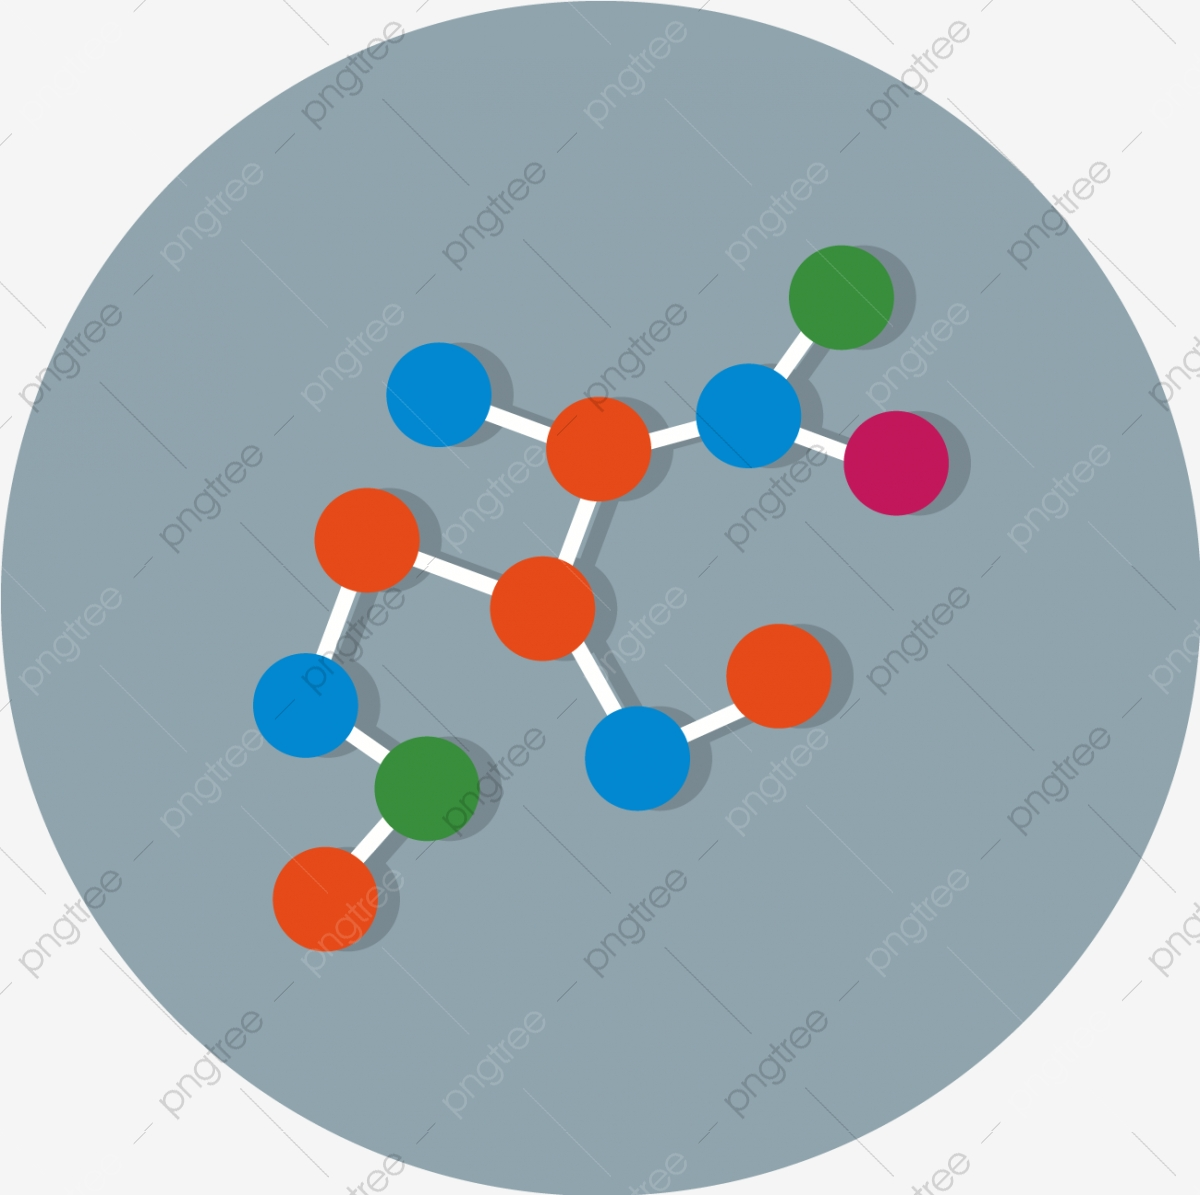 vector structure icon structure icons molecular atoms png and vector with transparent background for free download https pngtree com freepng vector structure icon 4144221 html